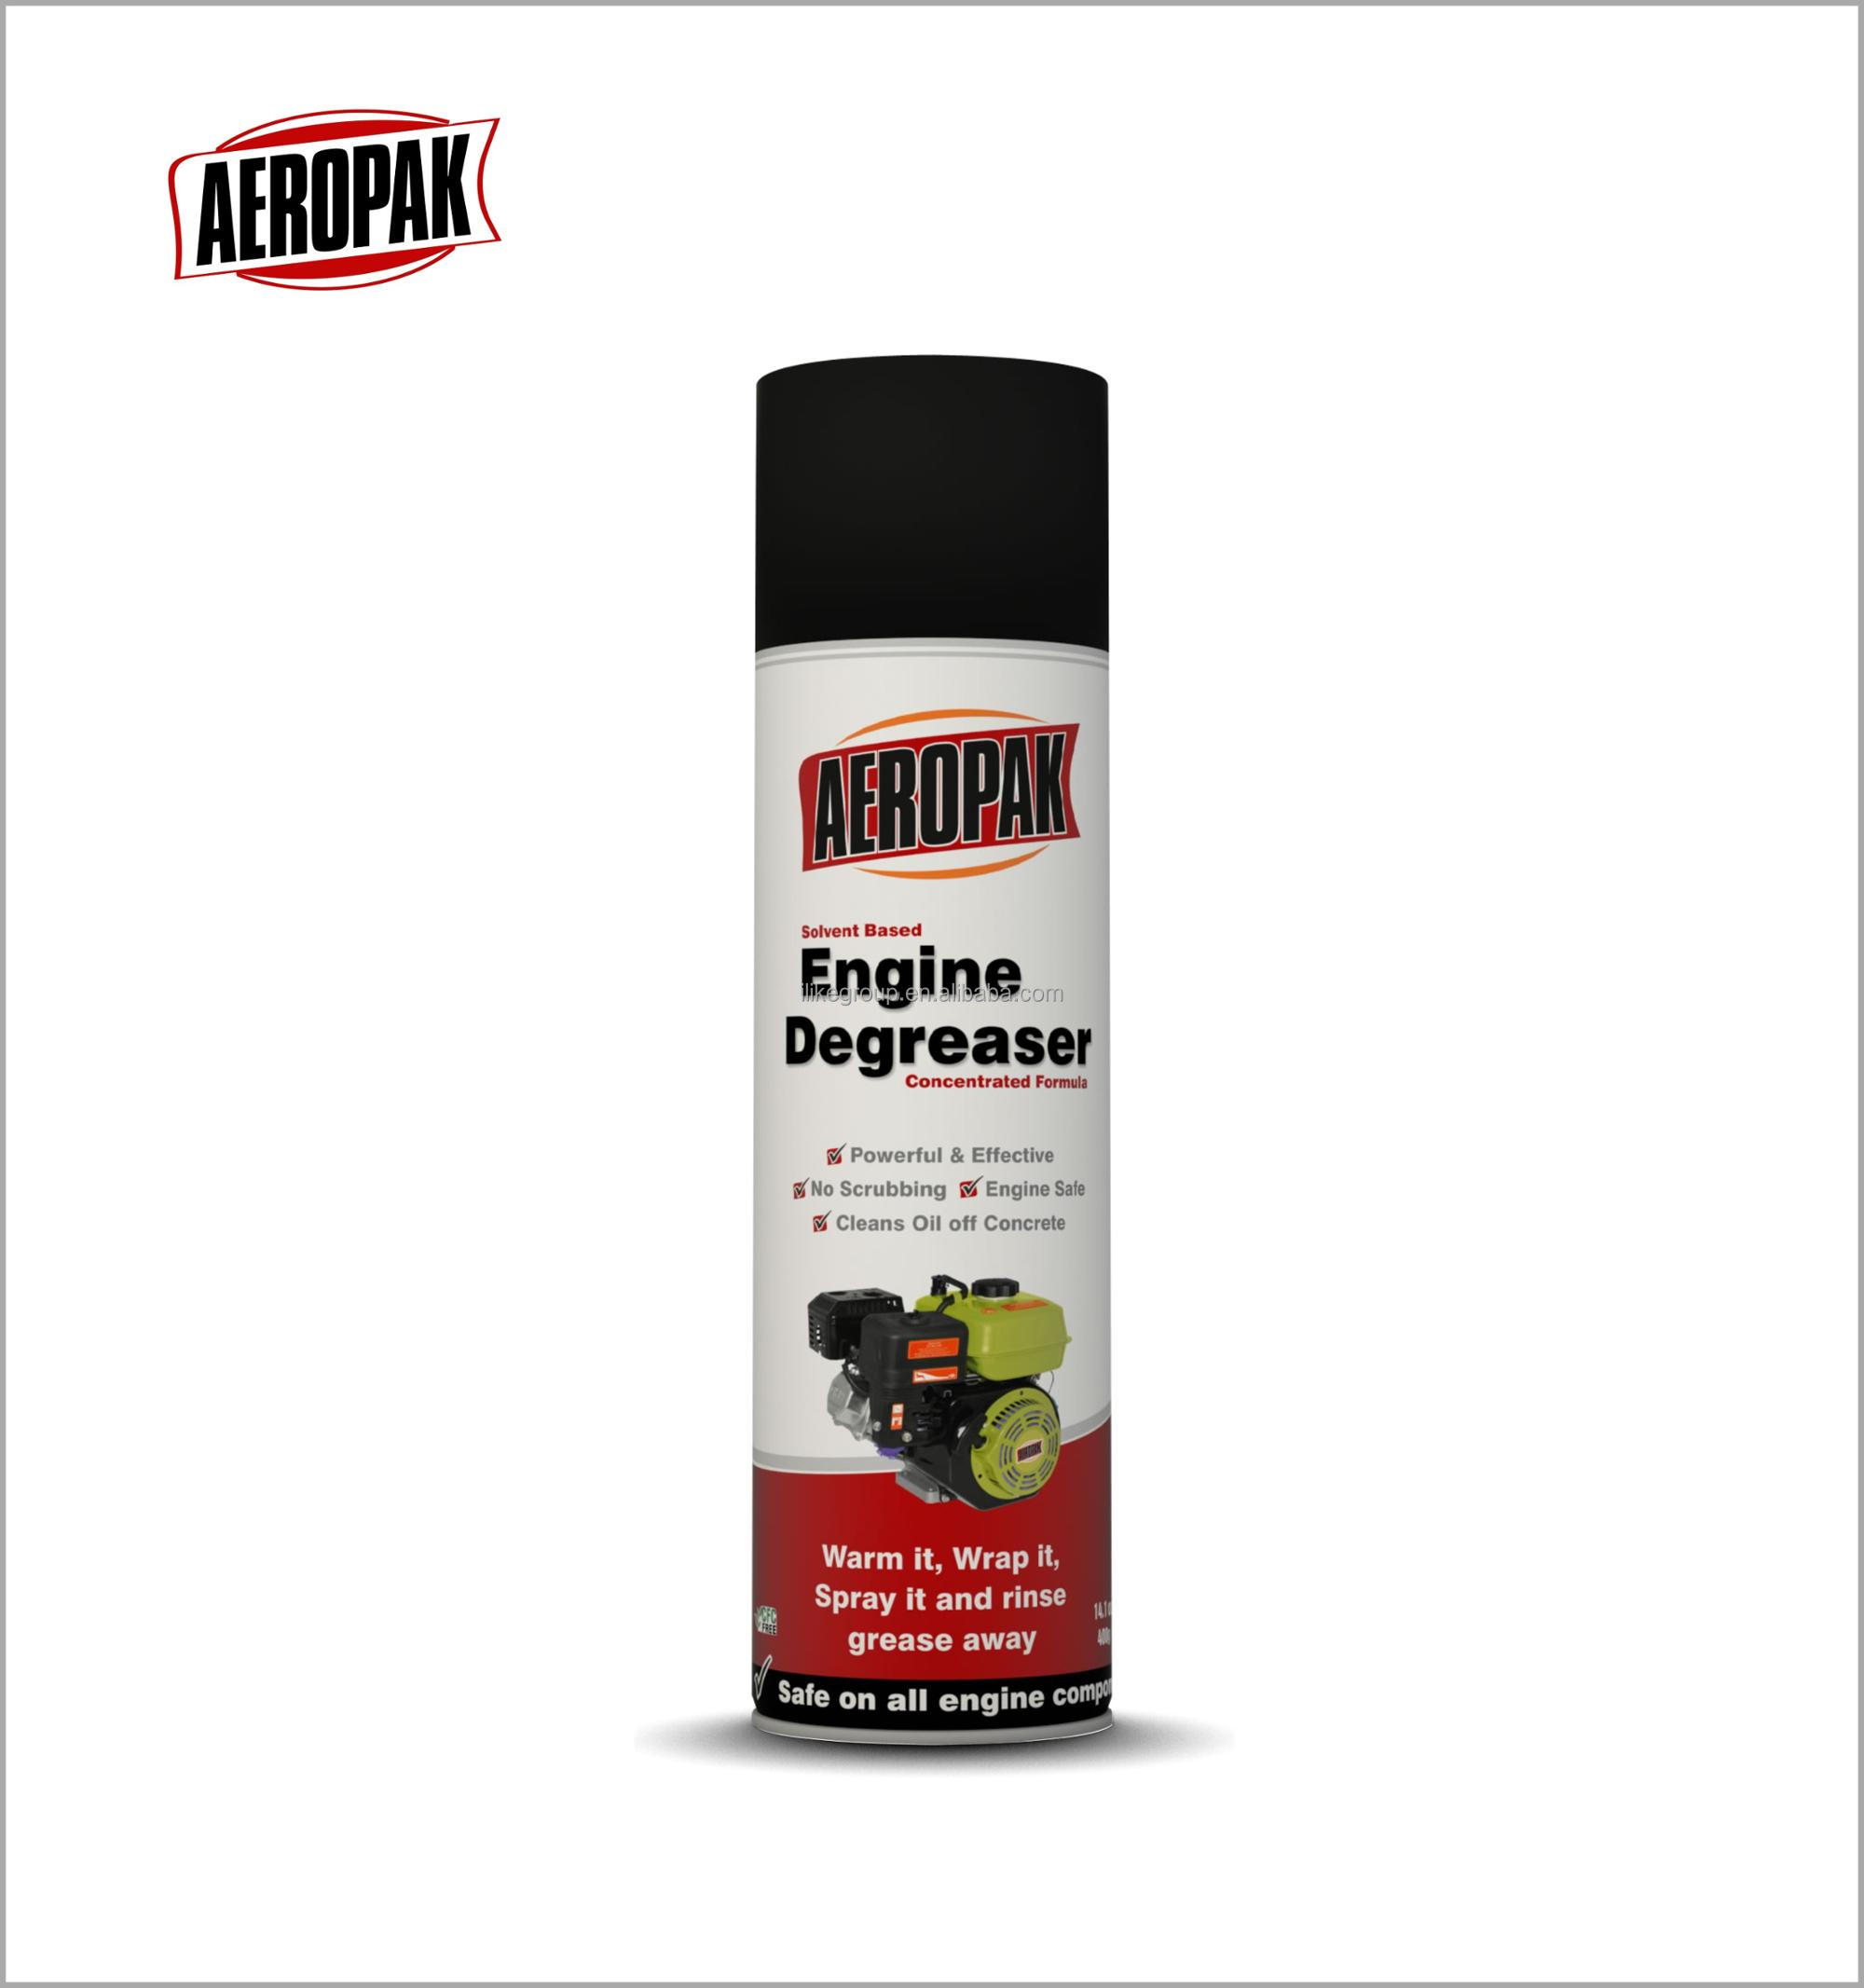 Aeropak Hot Sales Engine Surface Cleaner Engine Degreaser For Car